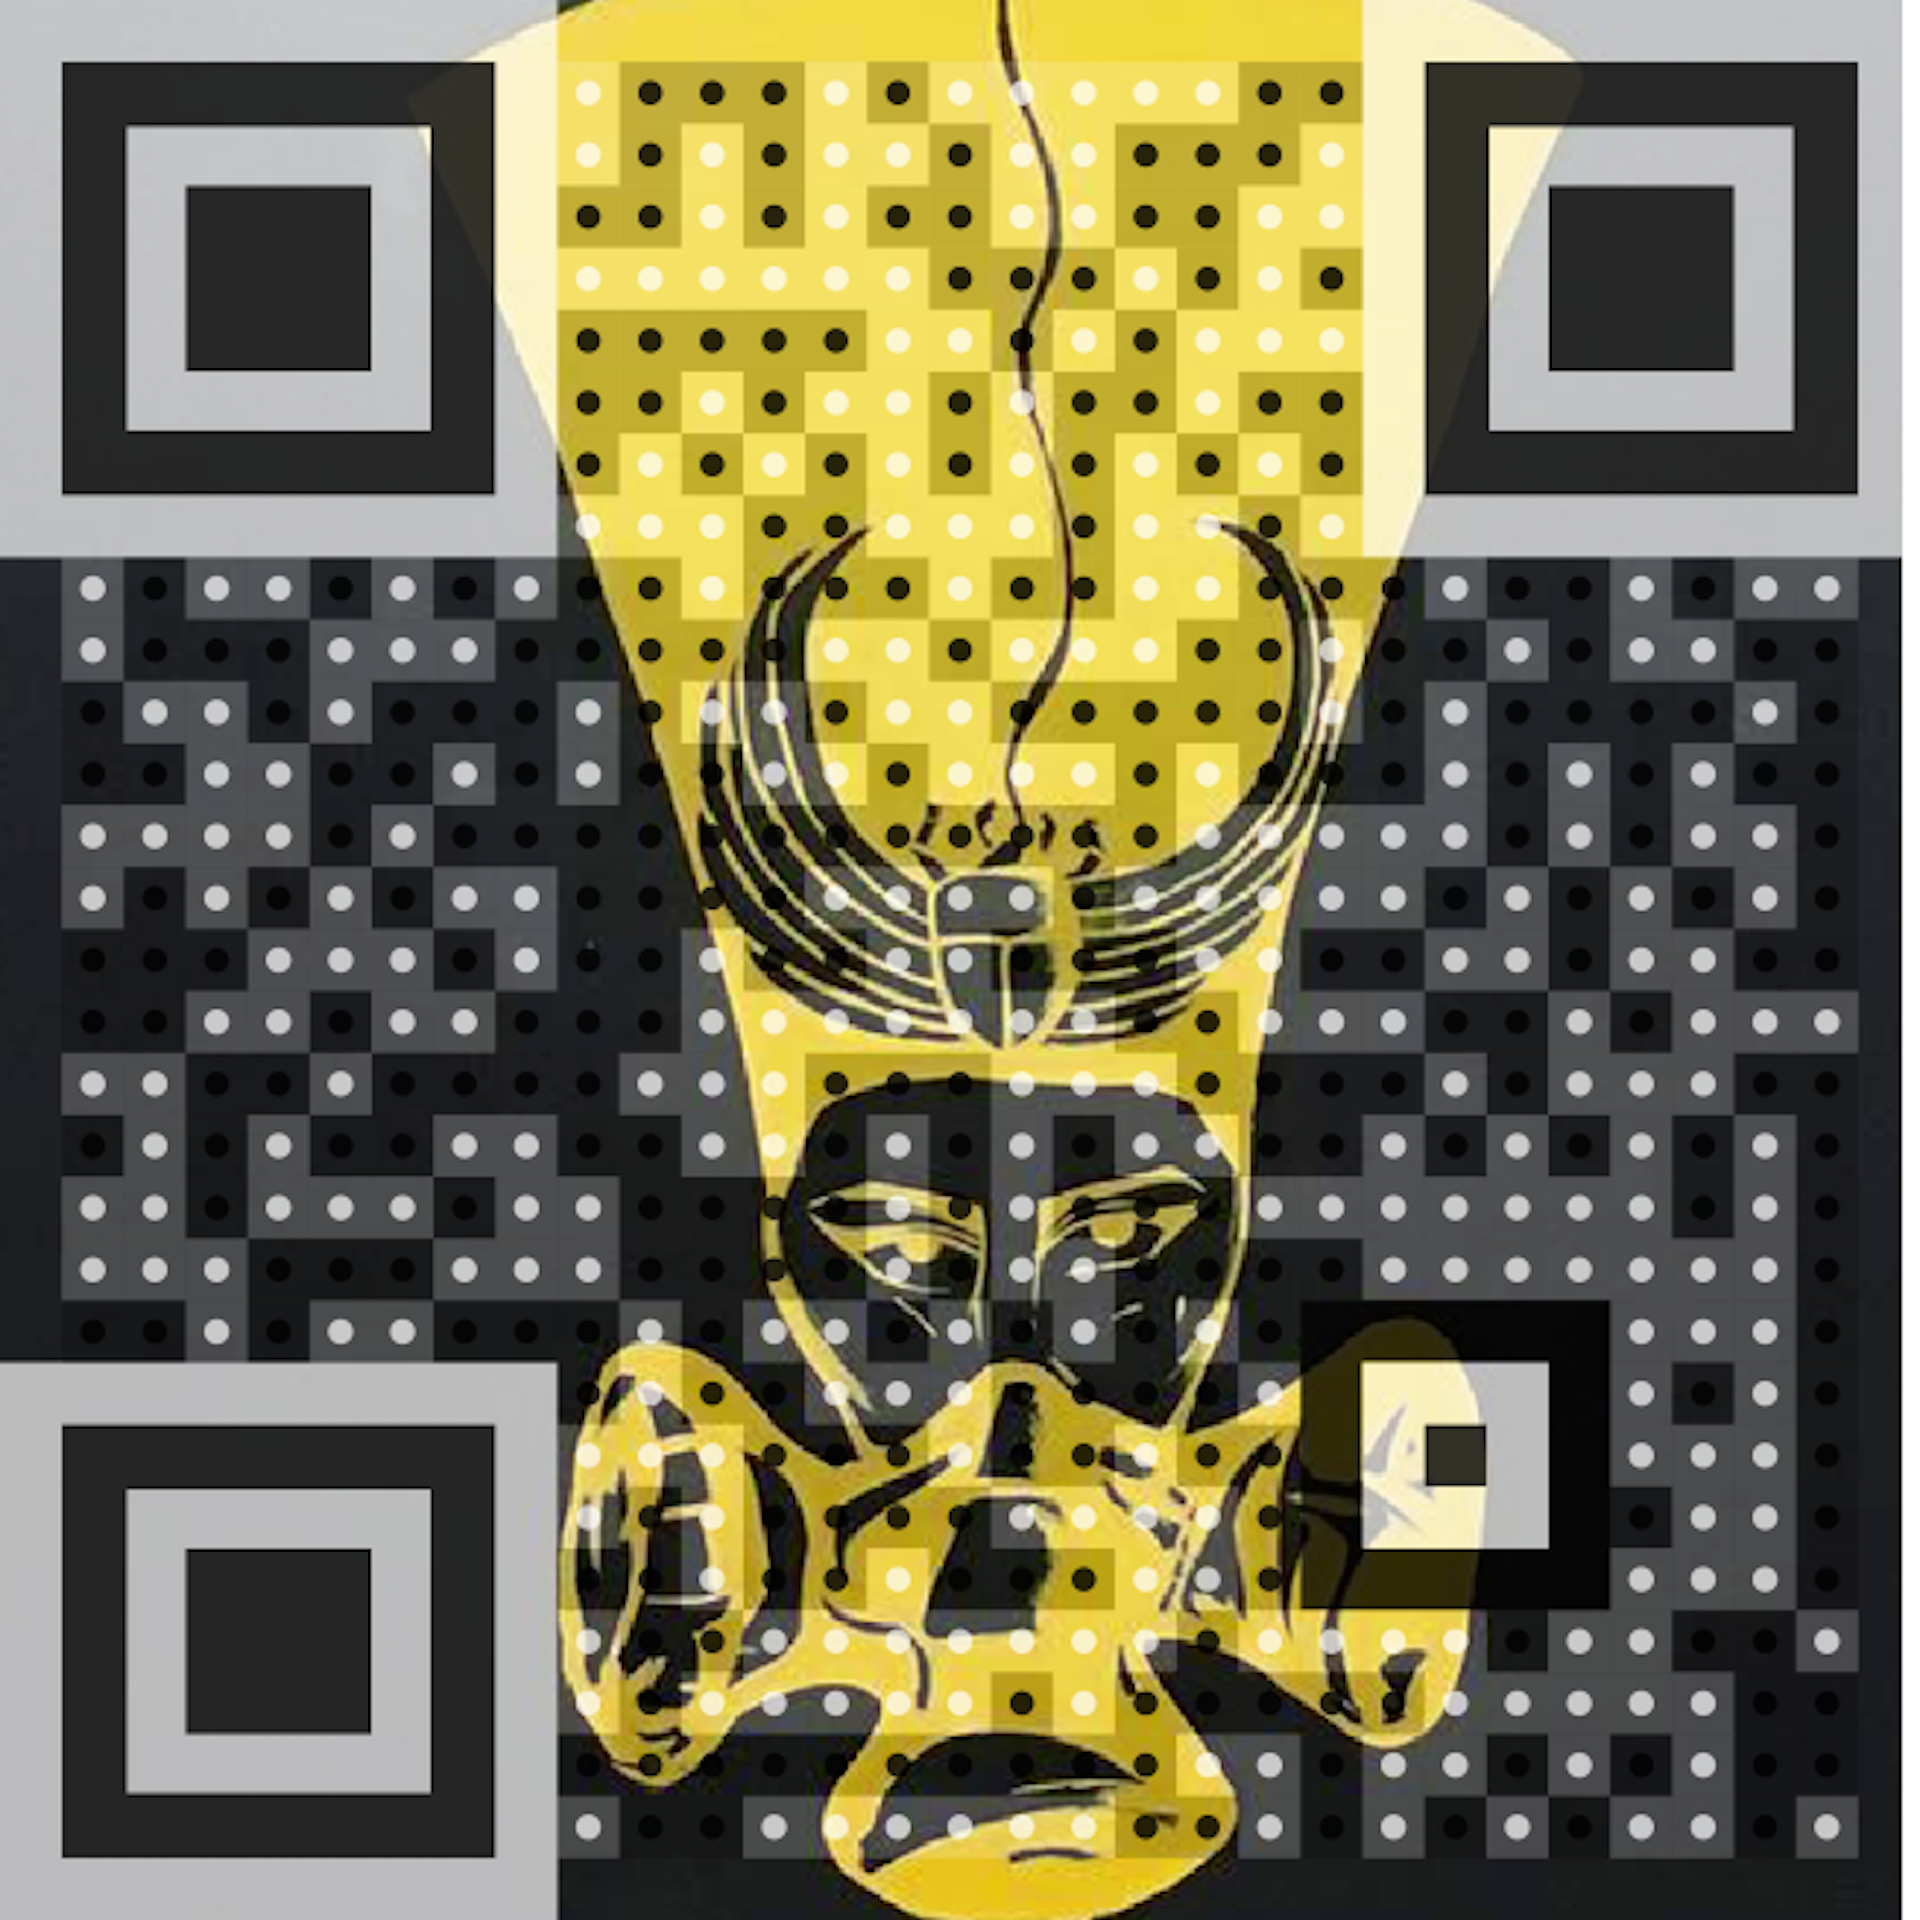 qrcode_art_at_night (1).png